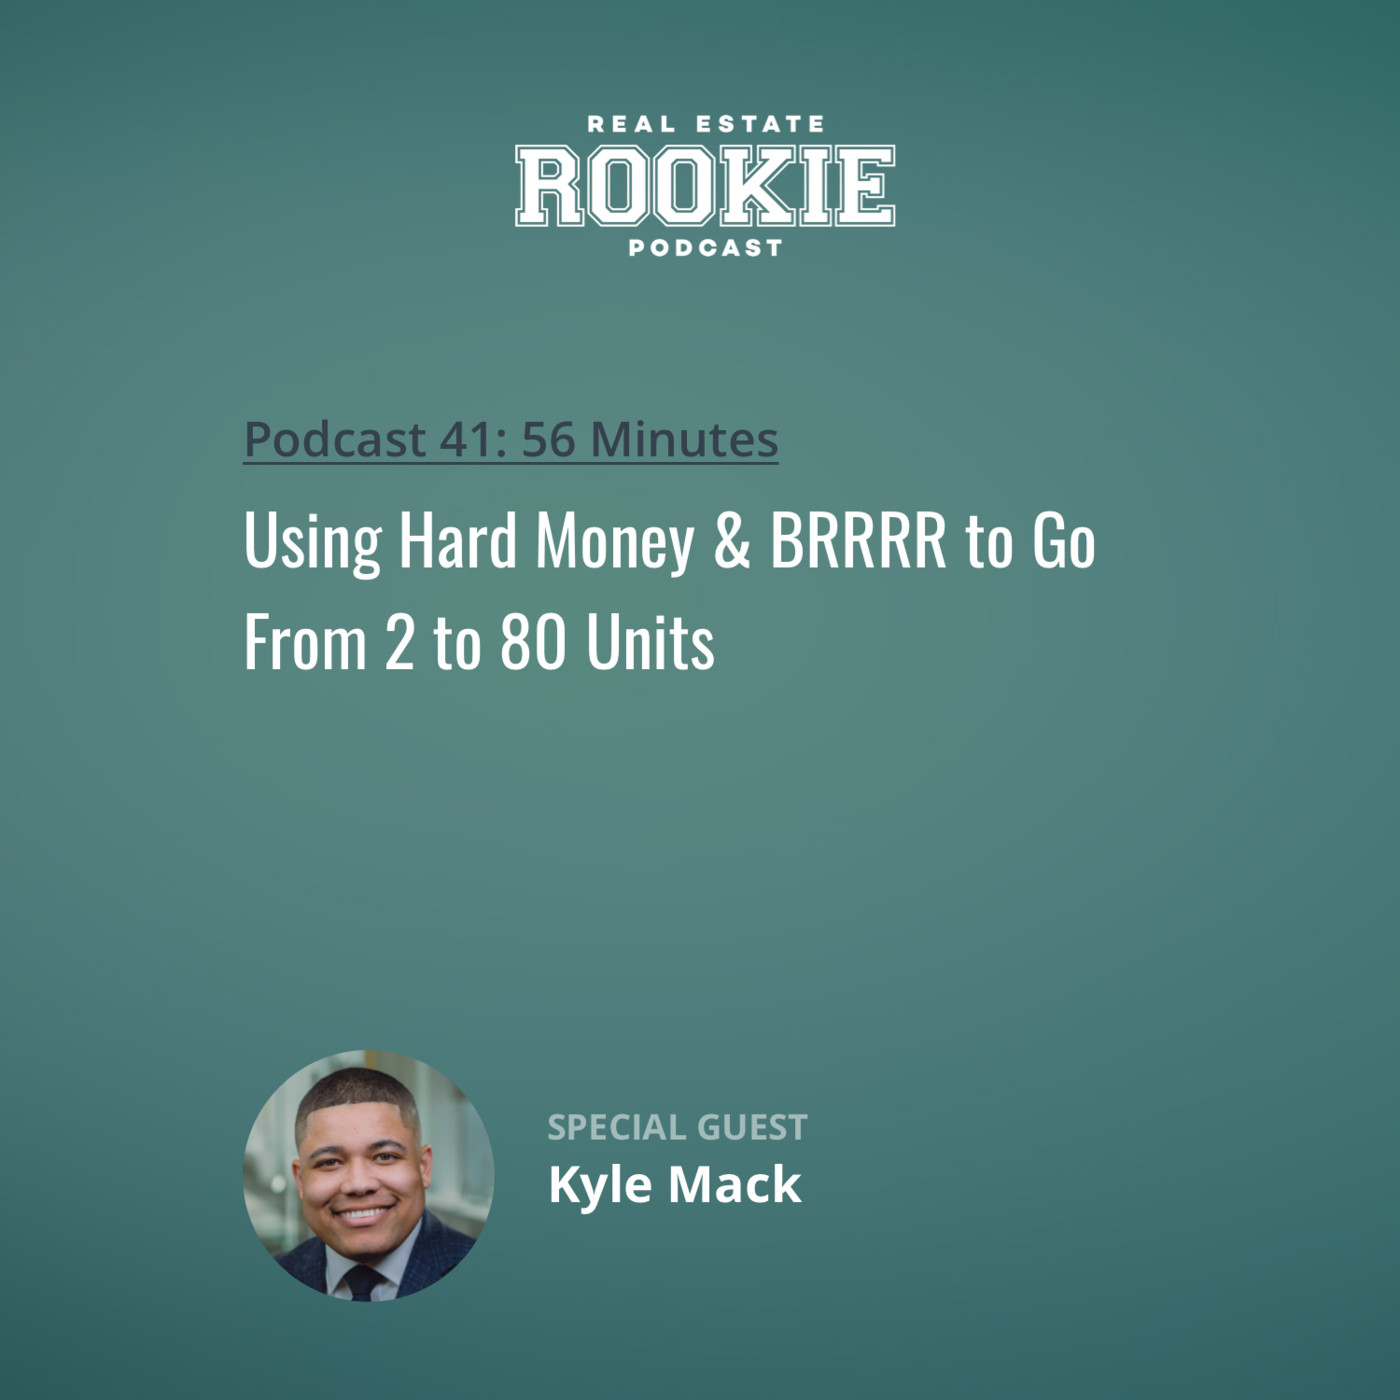 Using Hard Money & BRRRR to Go From 2 to 80 Units with Kyle Mack